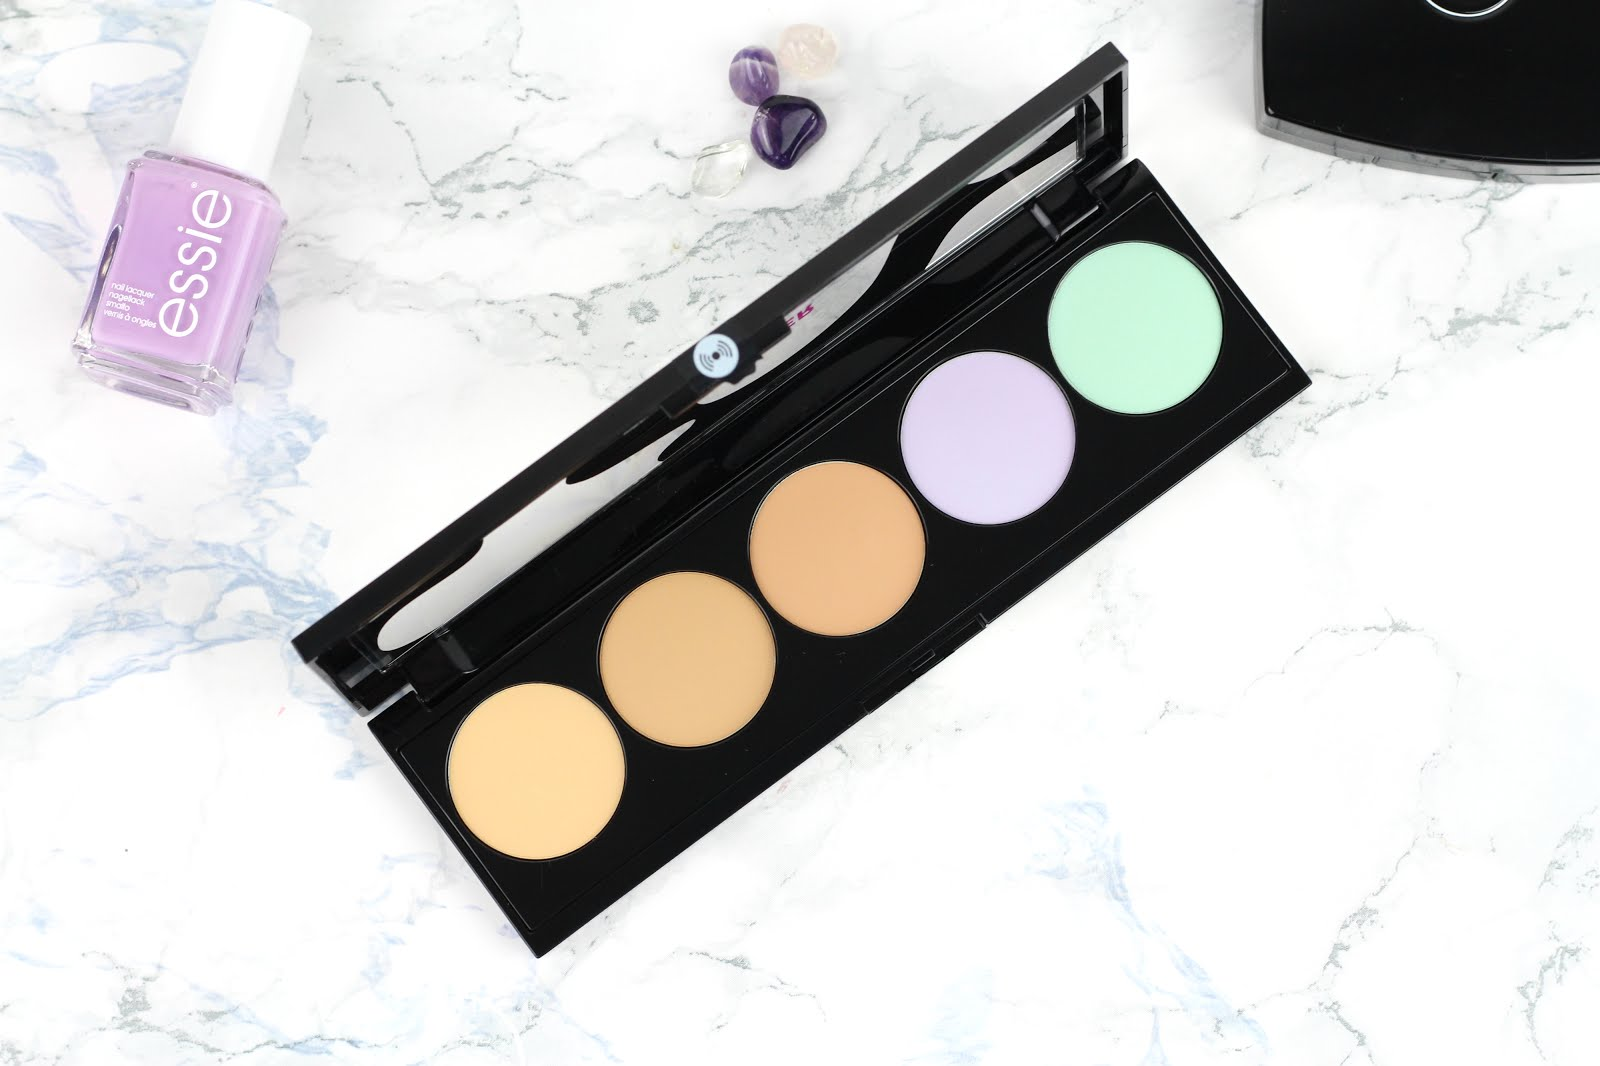 loreal infaillible total cover, loreal infaillible total cover palette, loreal infaillible total cover concealer palette, loreal infaillible total cover color correcting palette